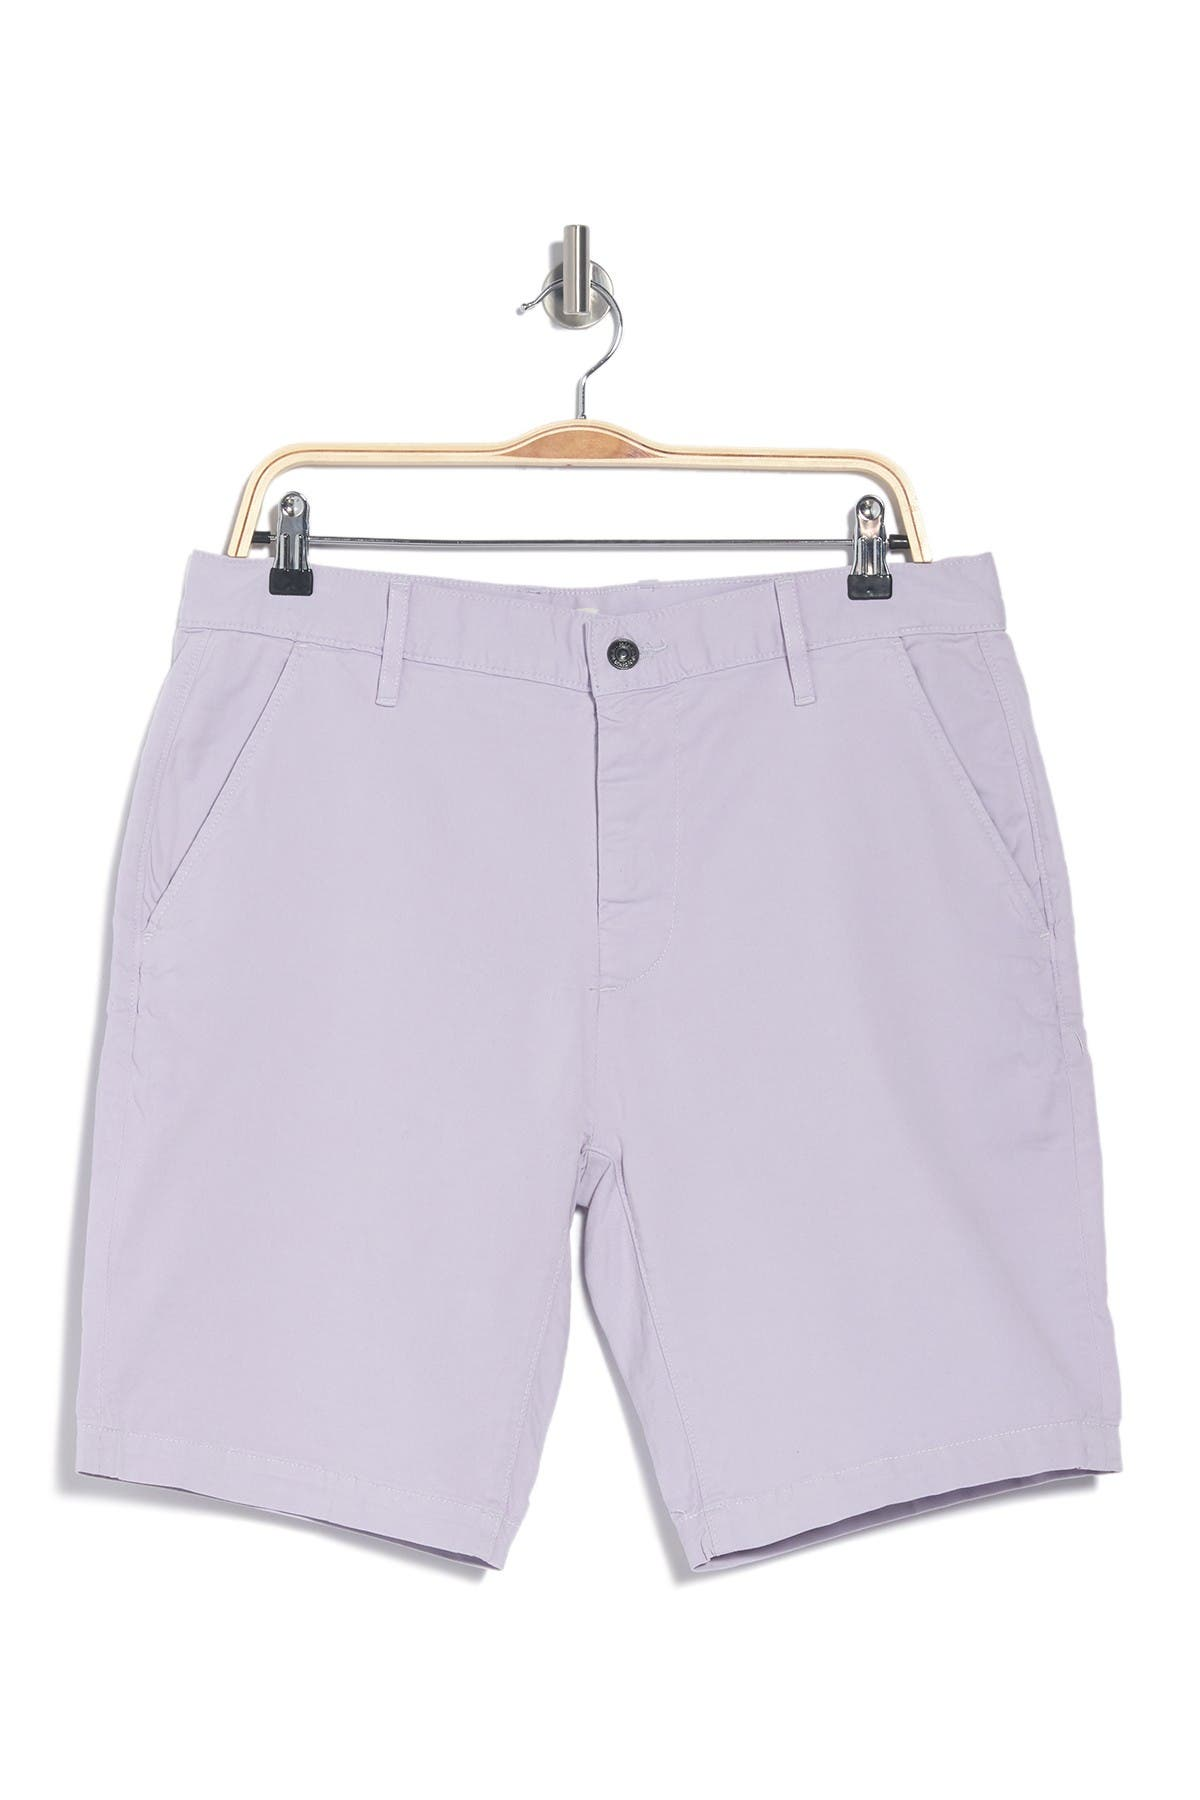 Image of 7 For All Mankind Chino Short